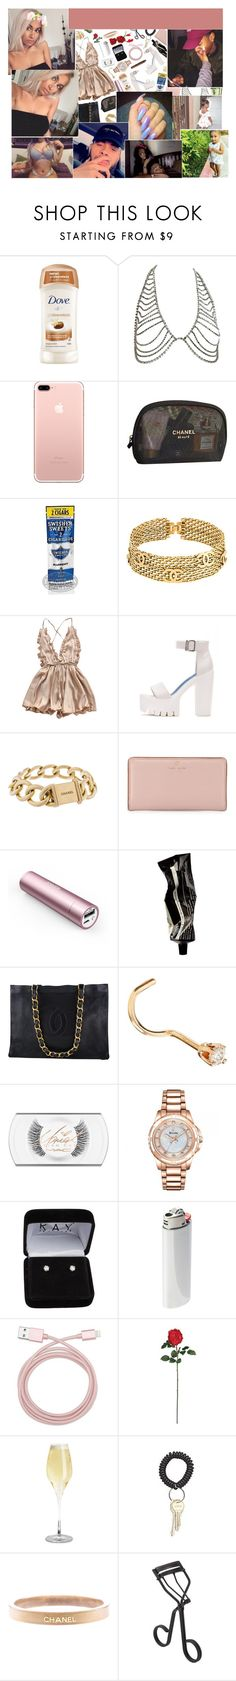 """date night."" by dis-trict ❤ liked on Polyvore featuring Chanel, Disney, Kate Spade, Panasonic, Aesop, MAC Cosmetics, Bulova, Vetements, Belkin and Nearly Natural"